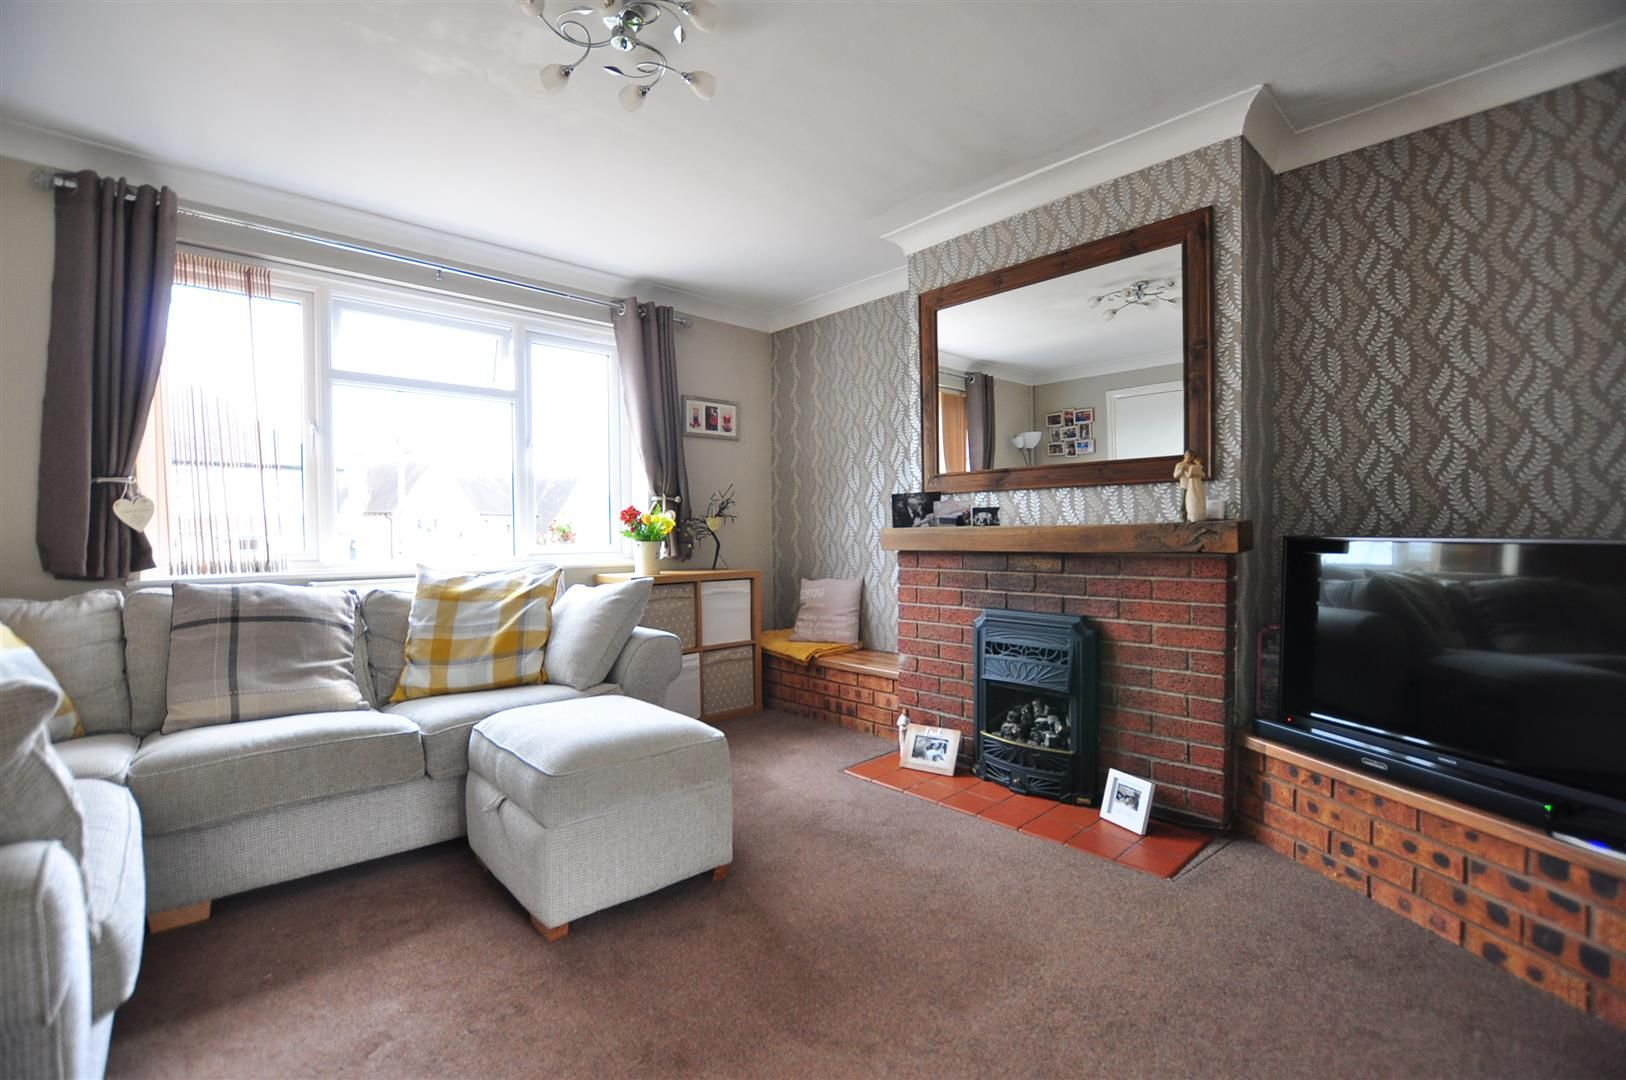 3 bed semi-detached for sale in Romsley  - Property Image 2